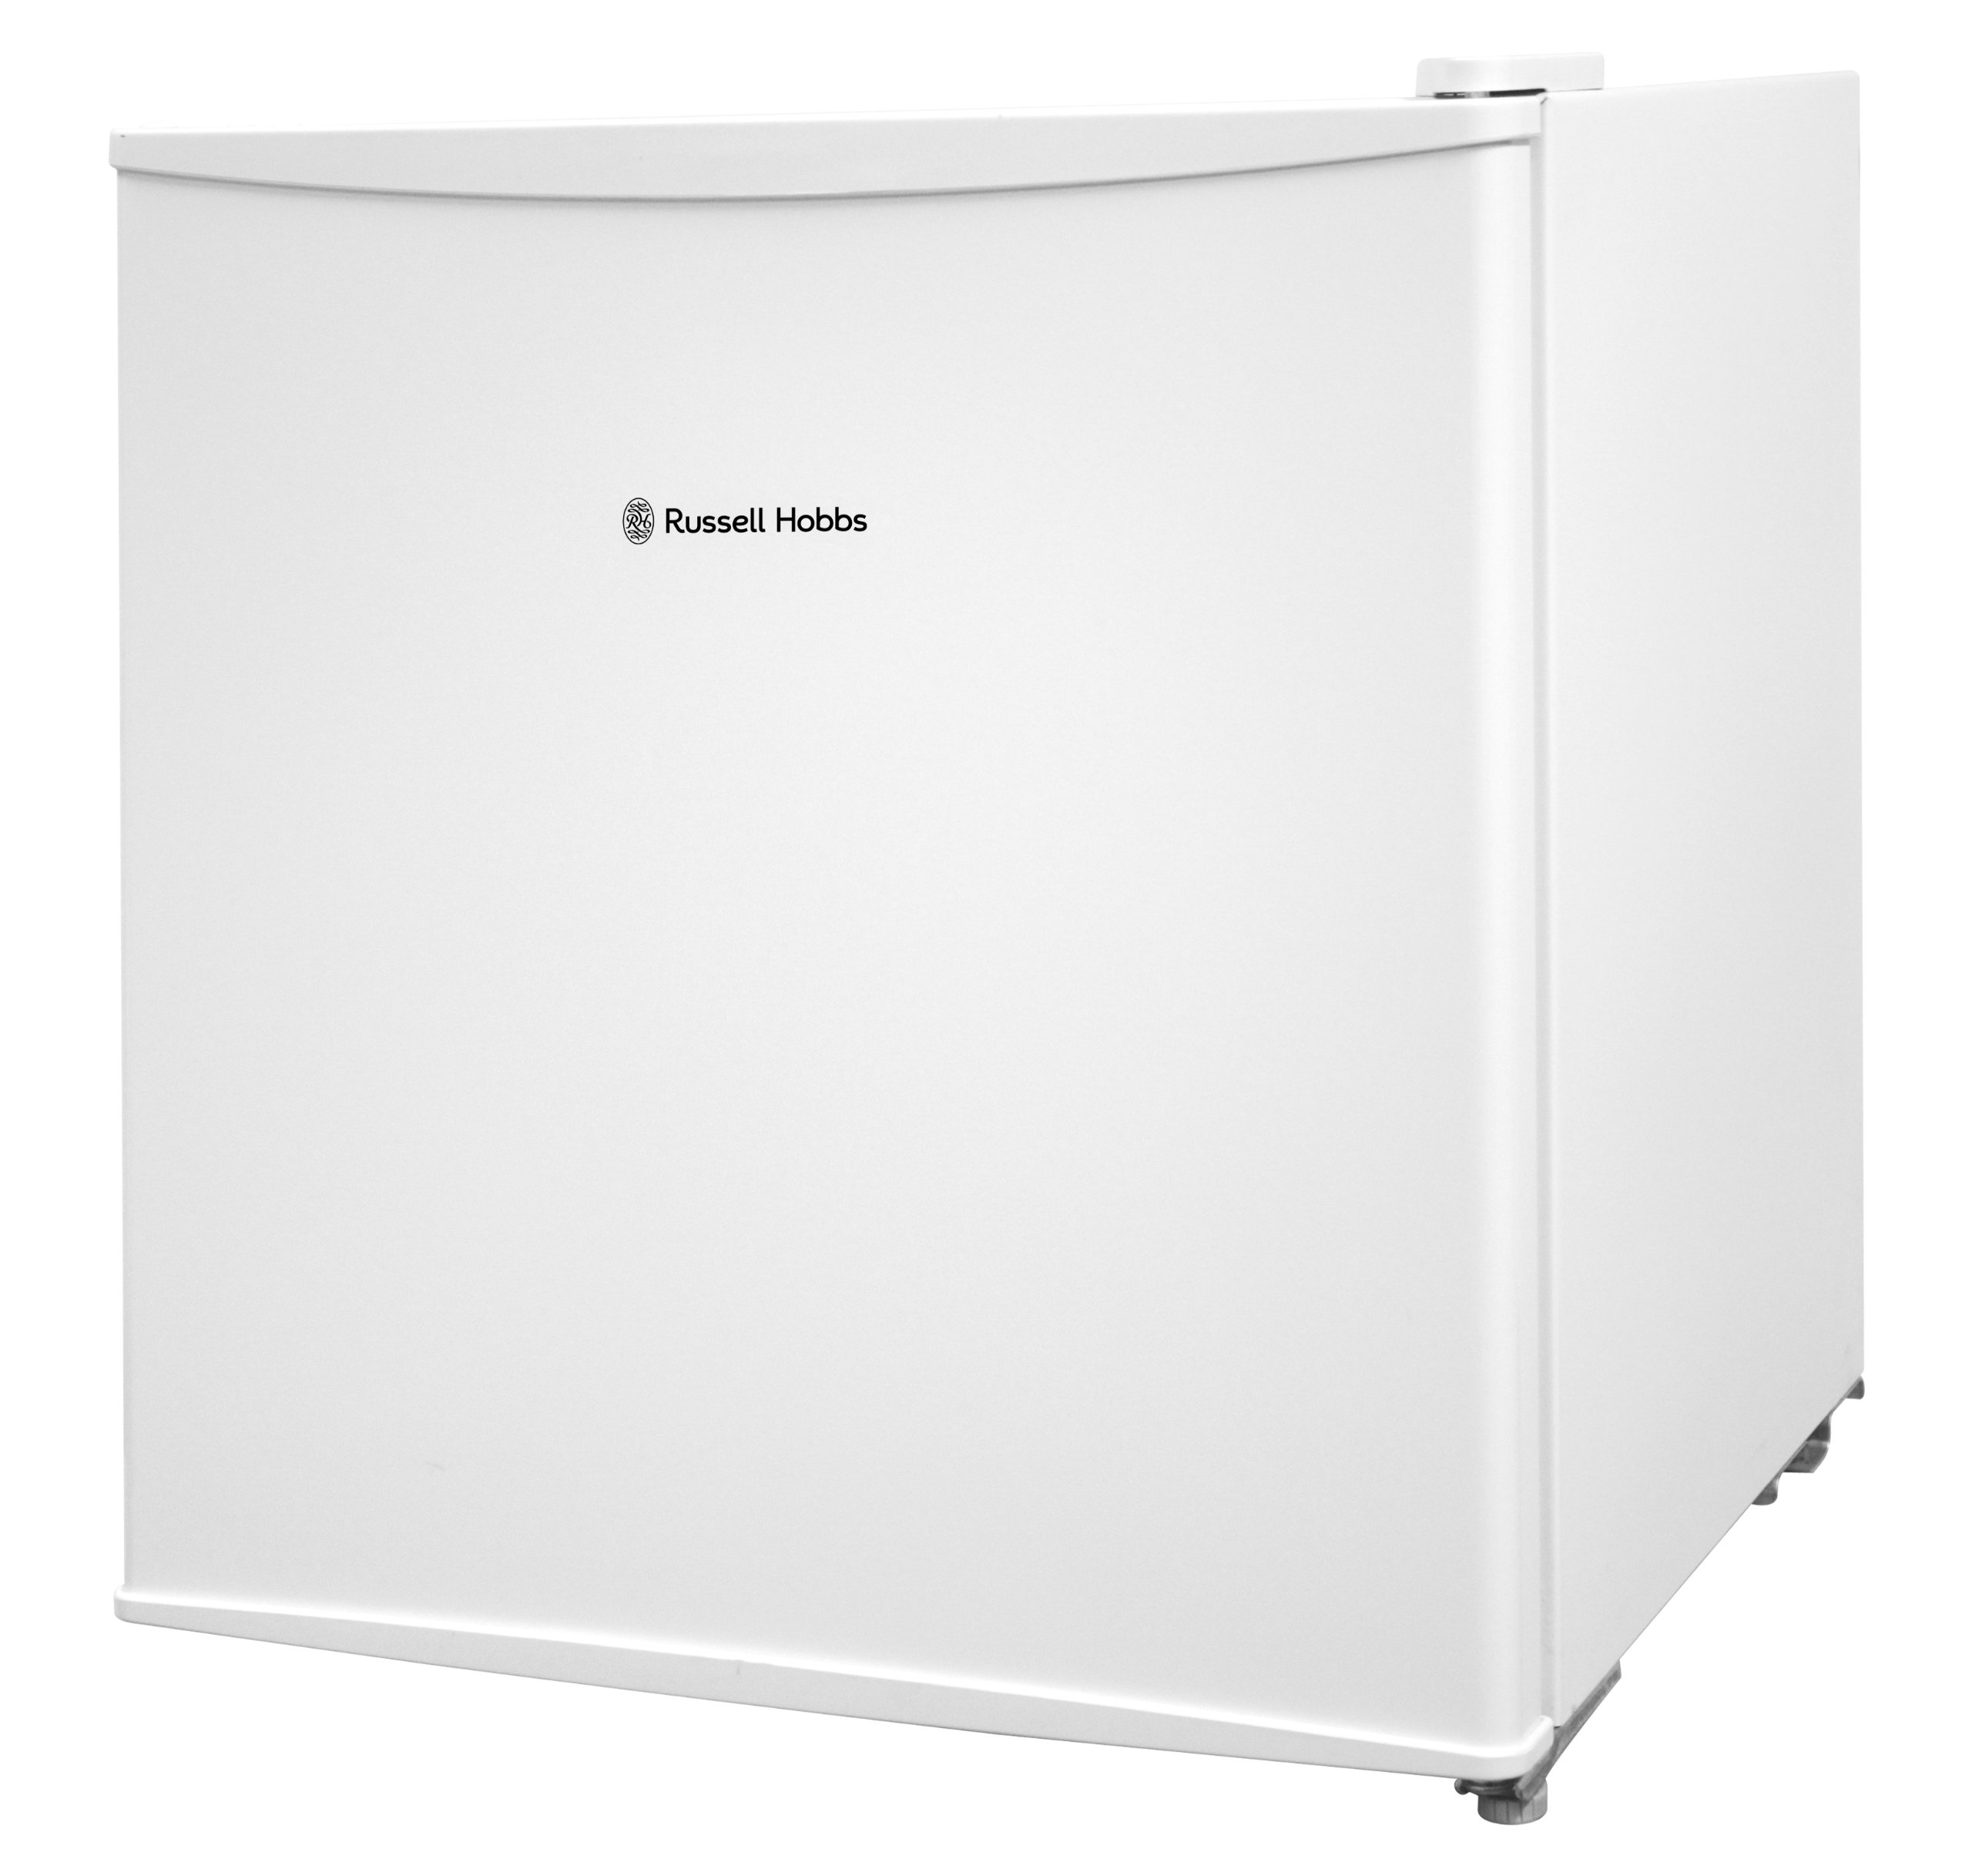 Russell hobbs rhttfz1 white table top freezer 32 litre ebay for Table top freezer